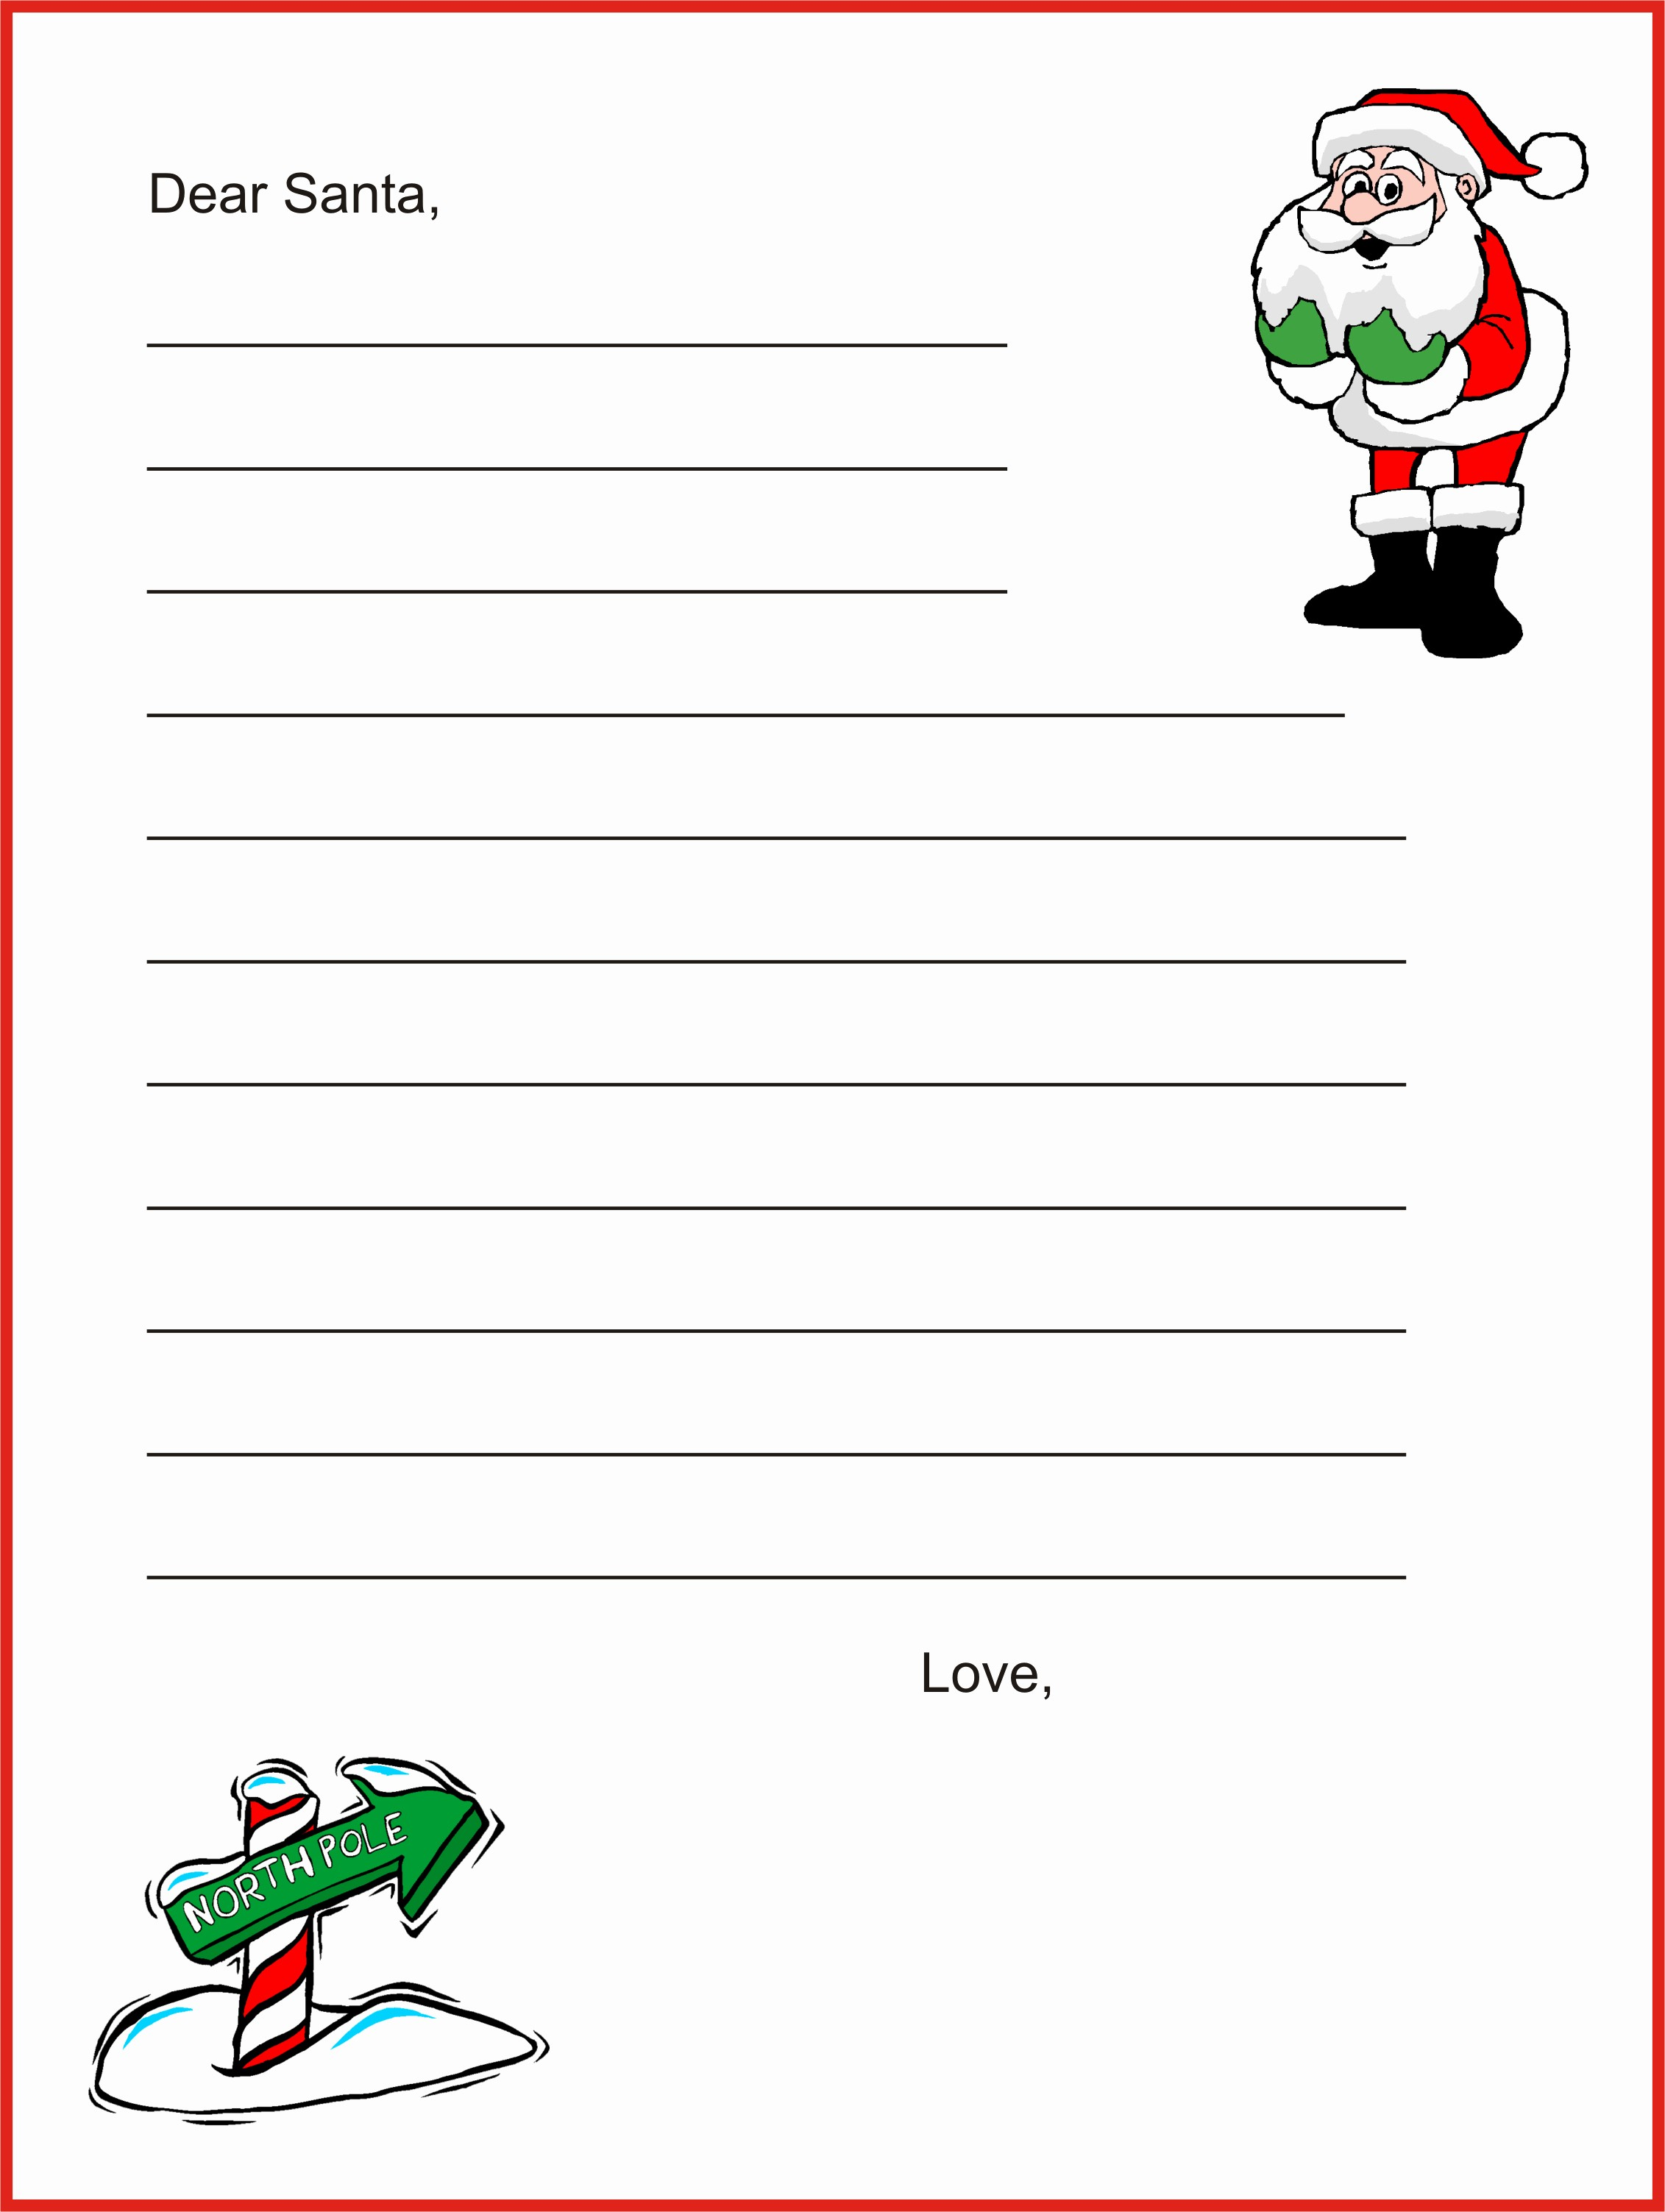 Letter to Santa Claus Templates New Dear Santa Letter Template Christmas Letter Tips